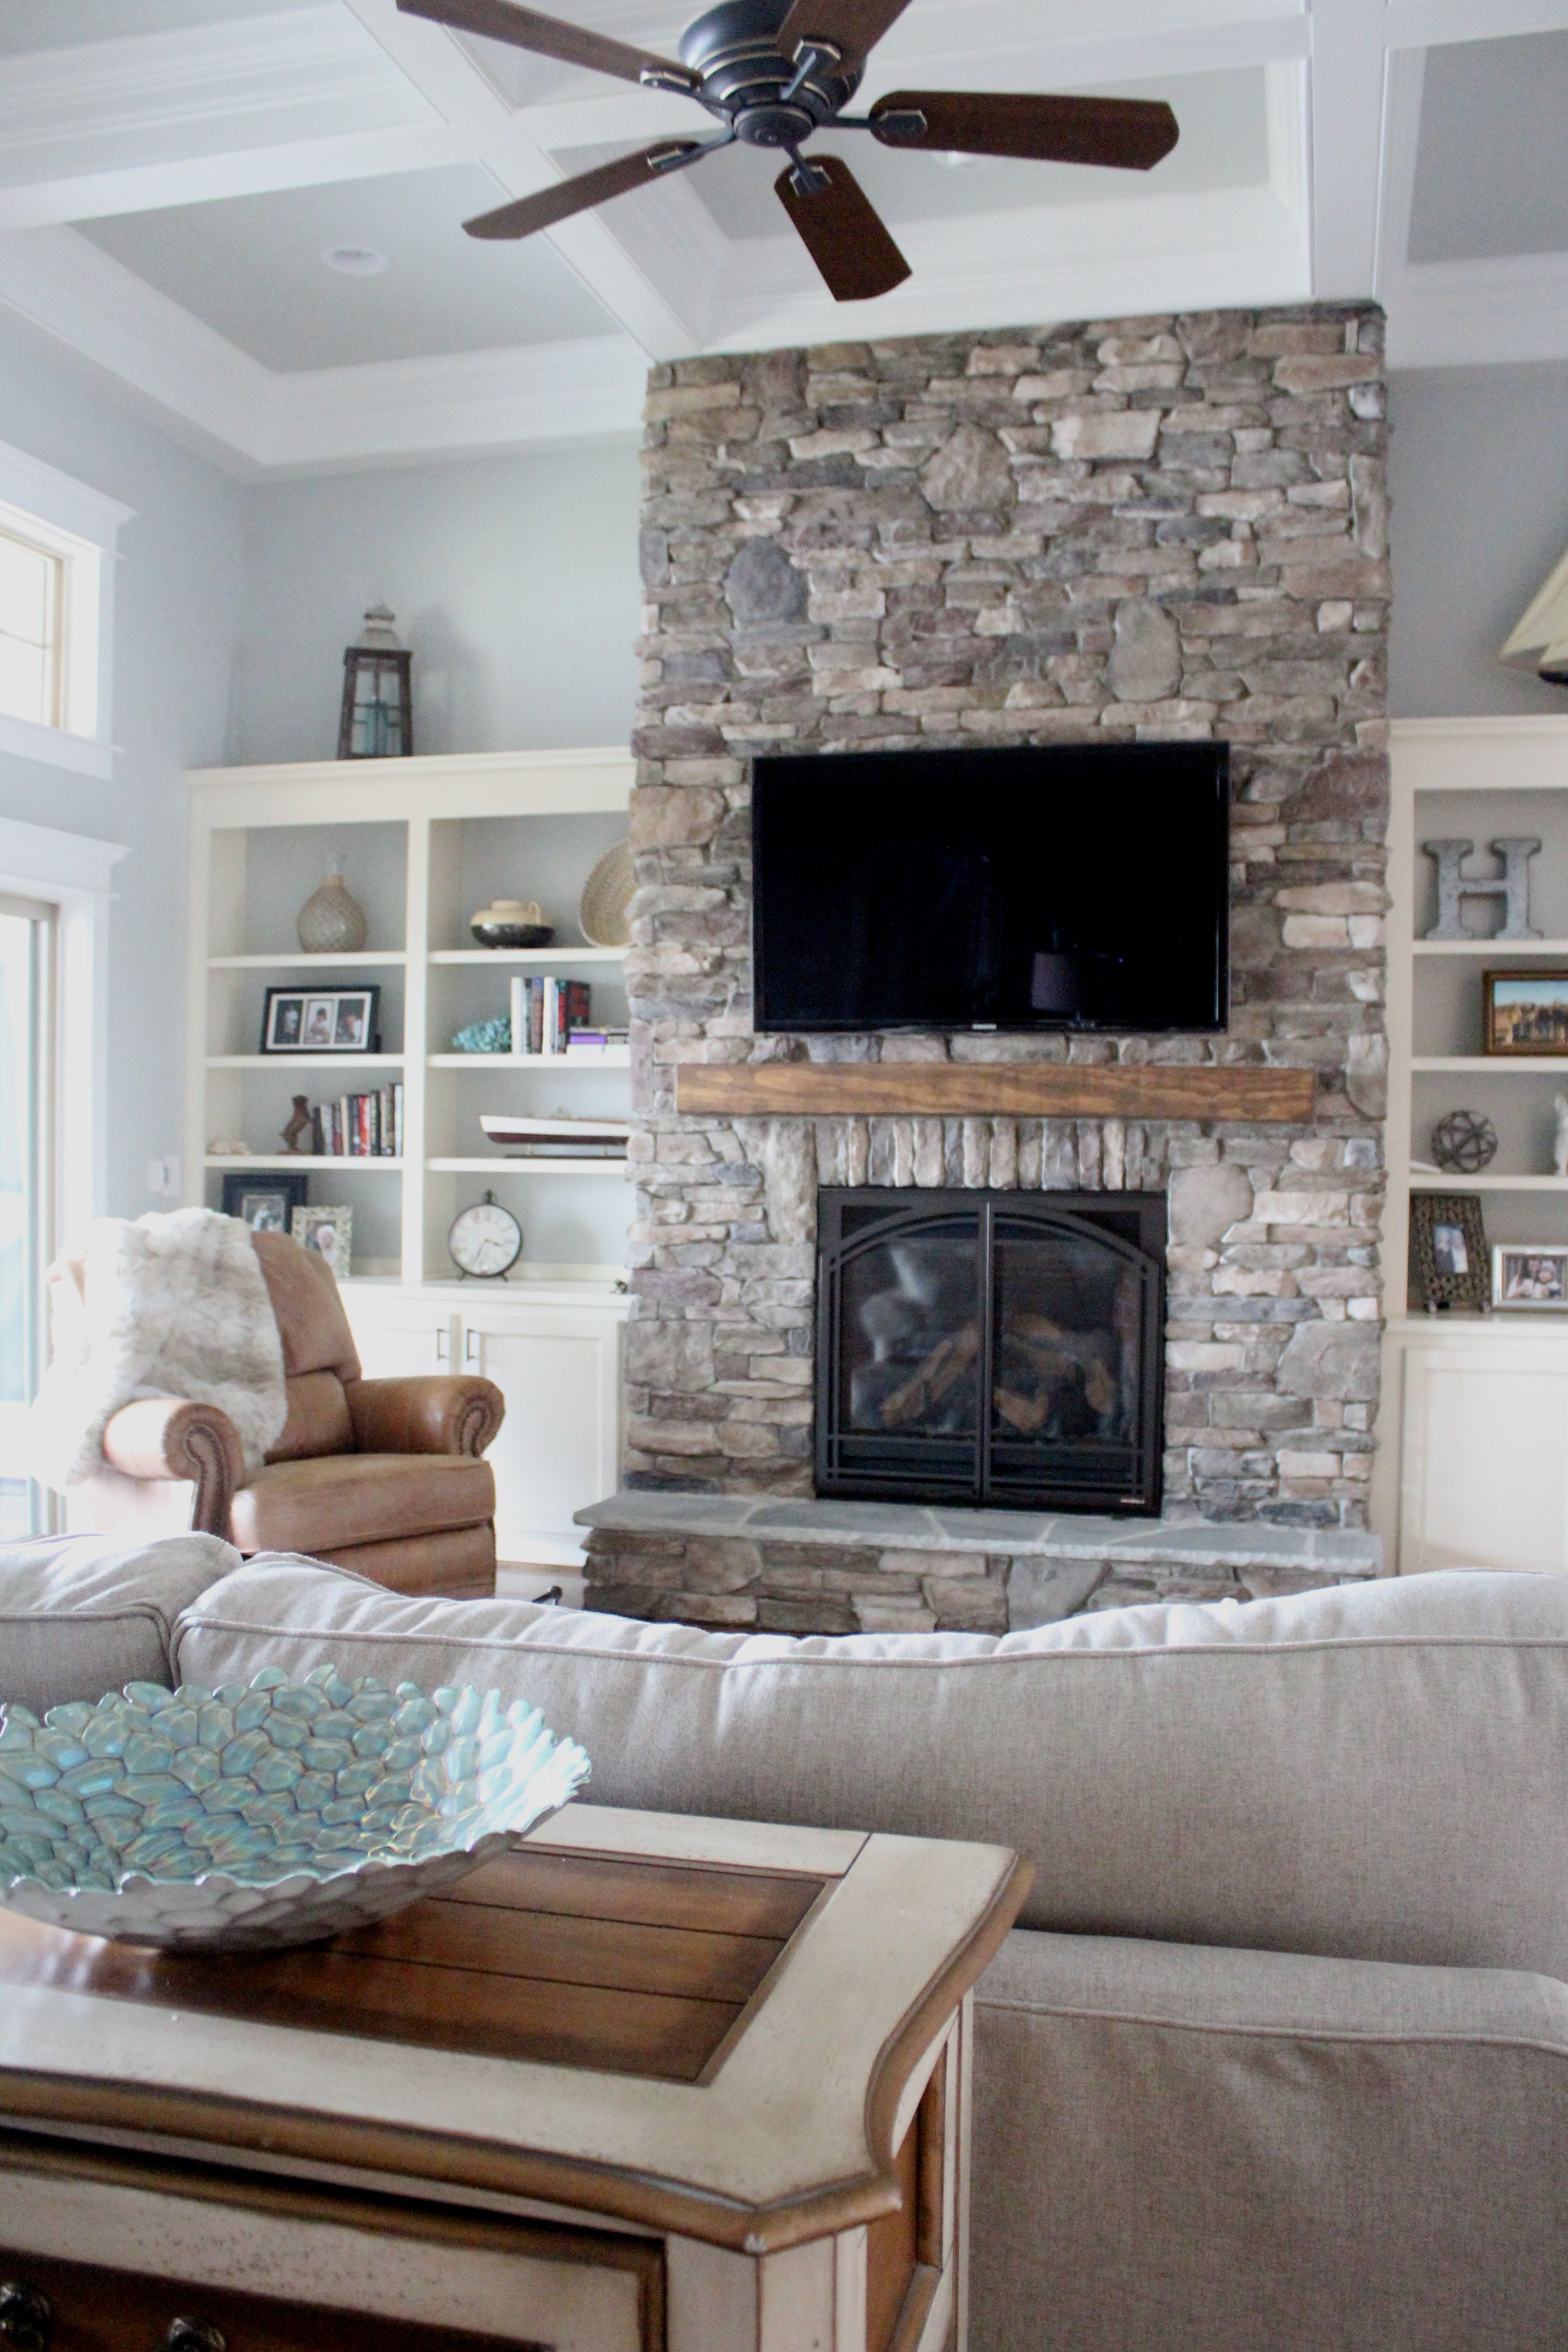 Secret Door Book Shelf Combo On Side Of Fireplace Maybe Catou  ~ Salones Con Chimeneas Electricas